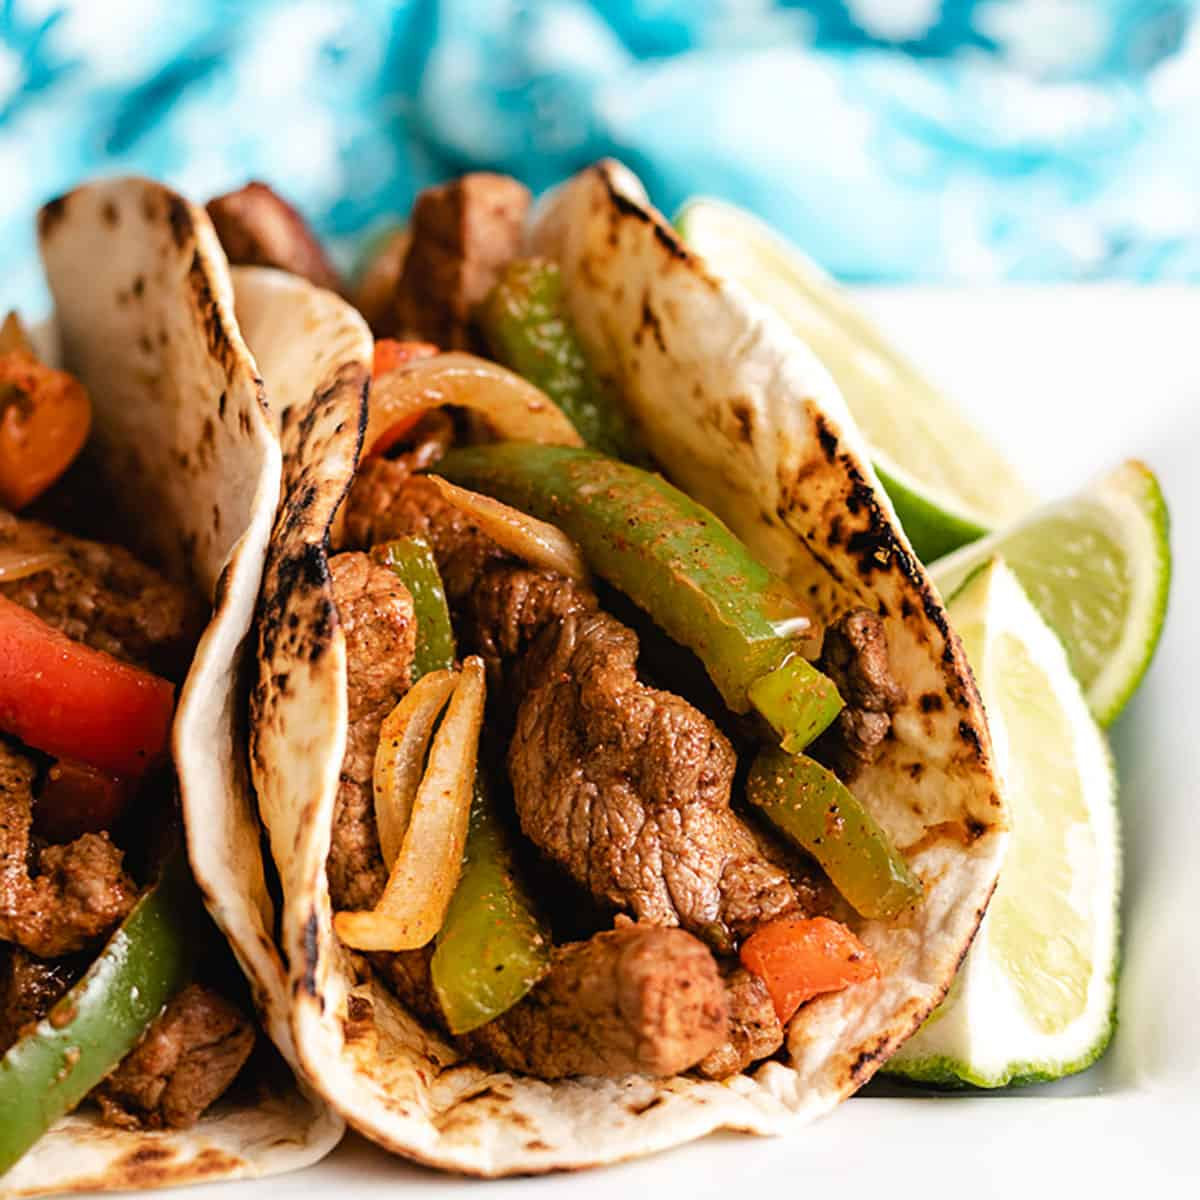 A close-up of the flat iron steak fajitas on a plate.